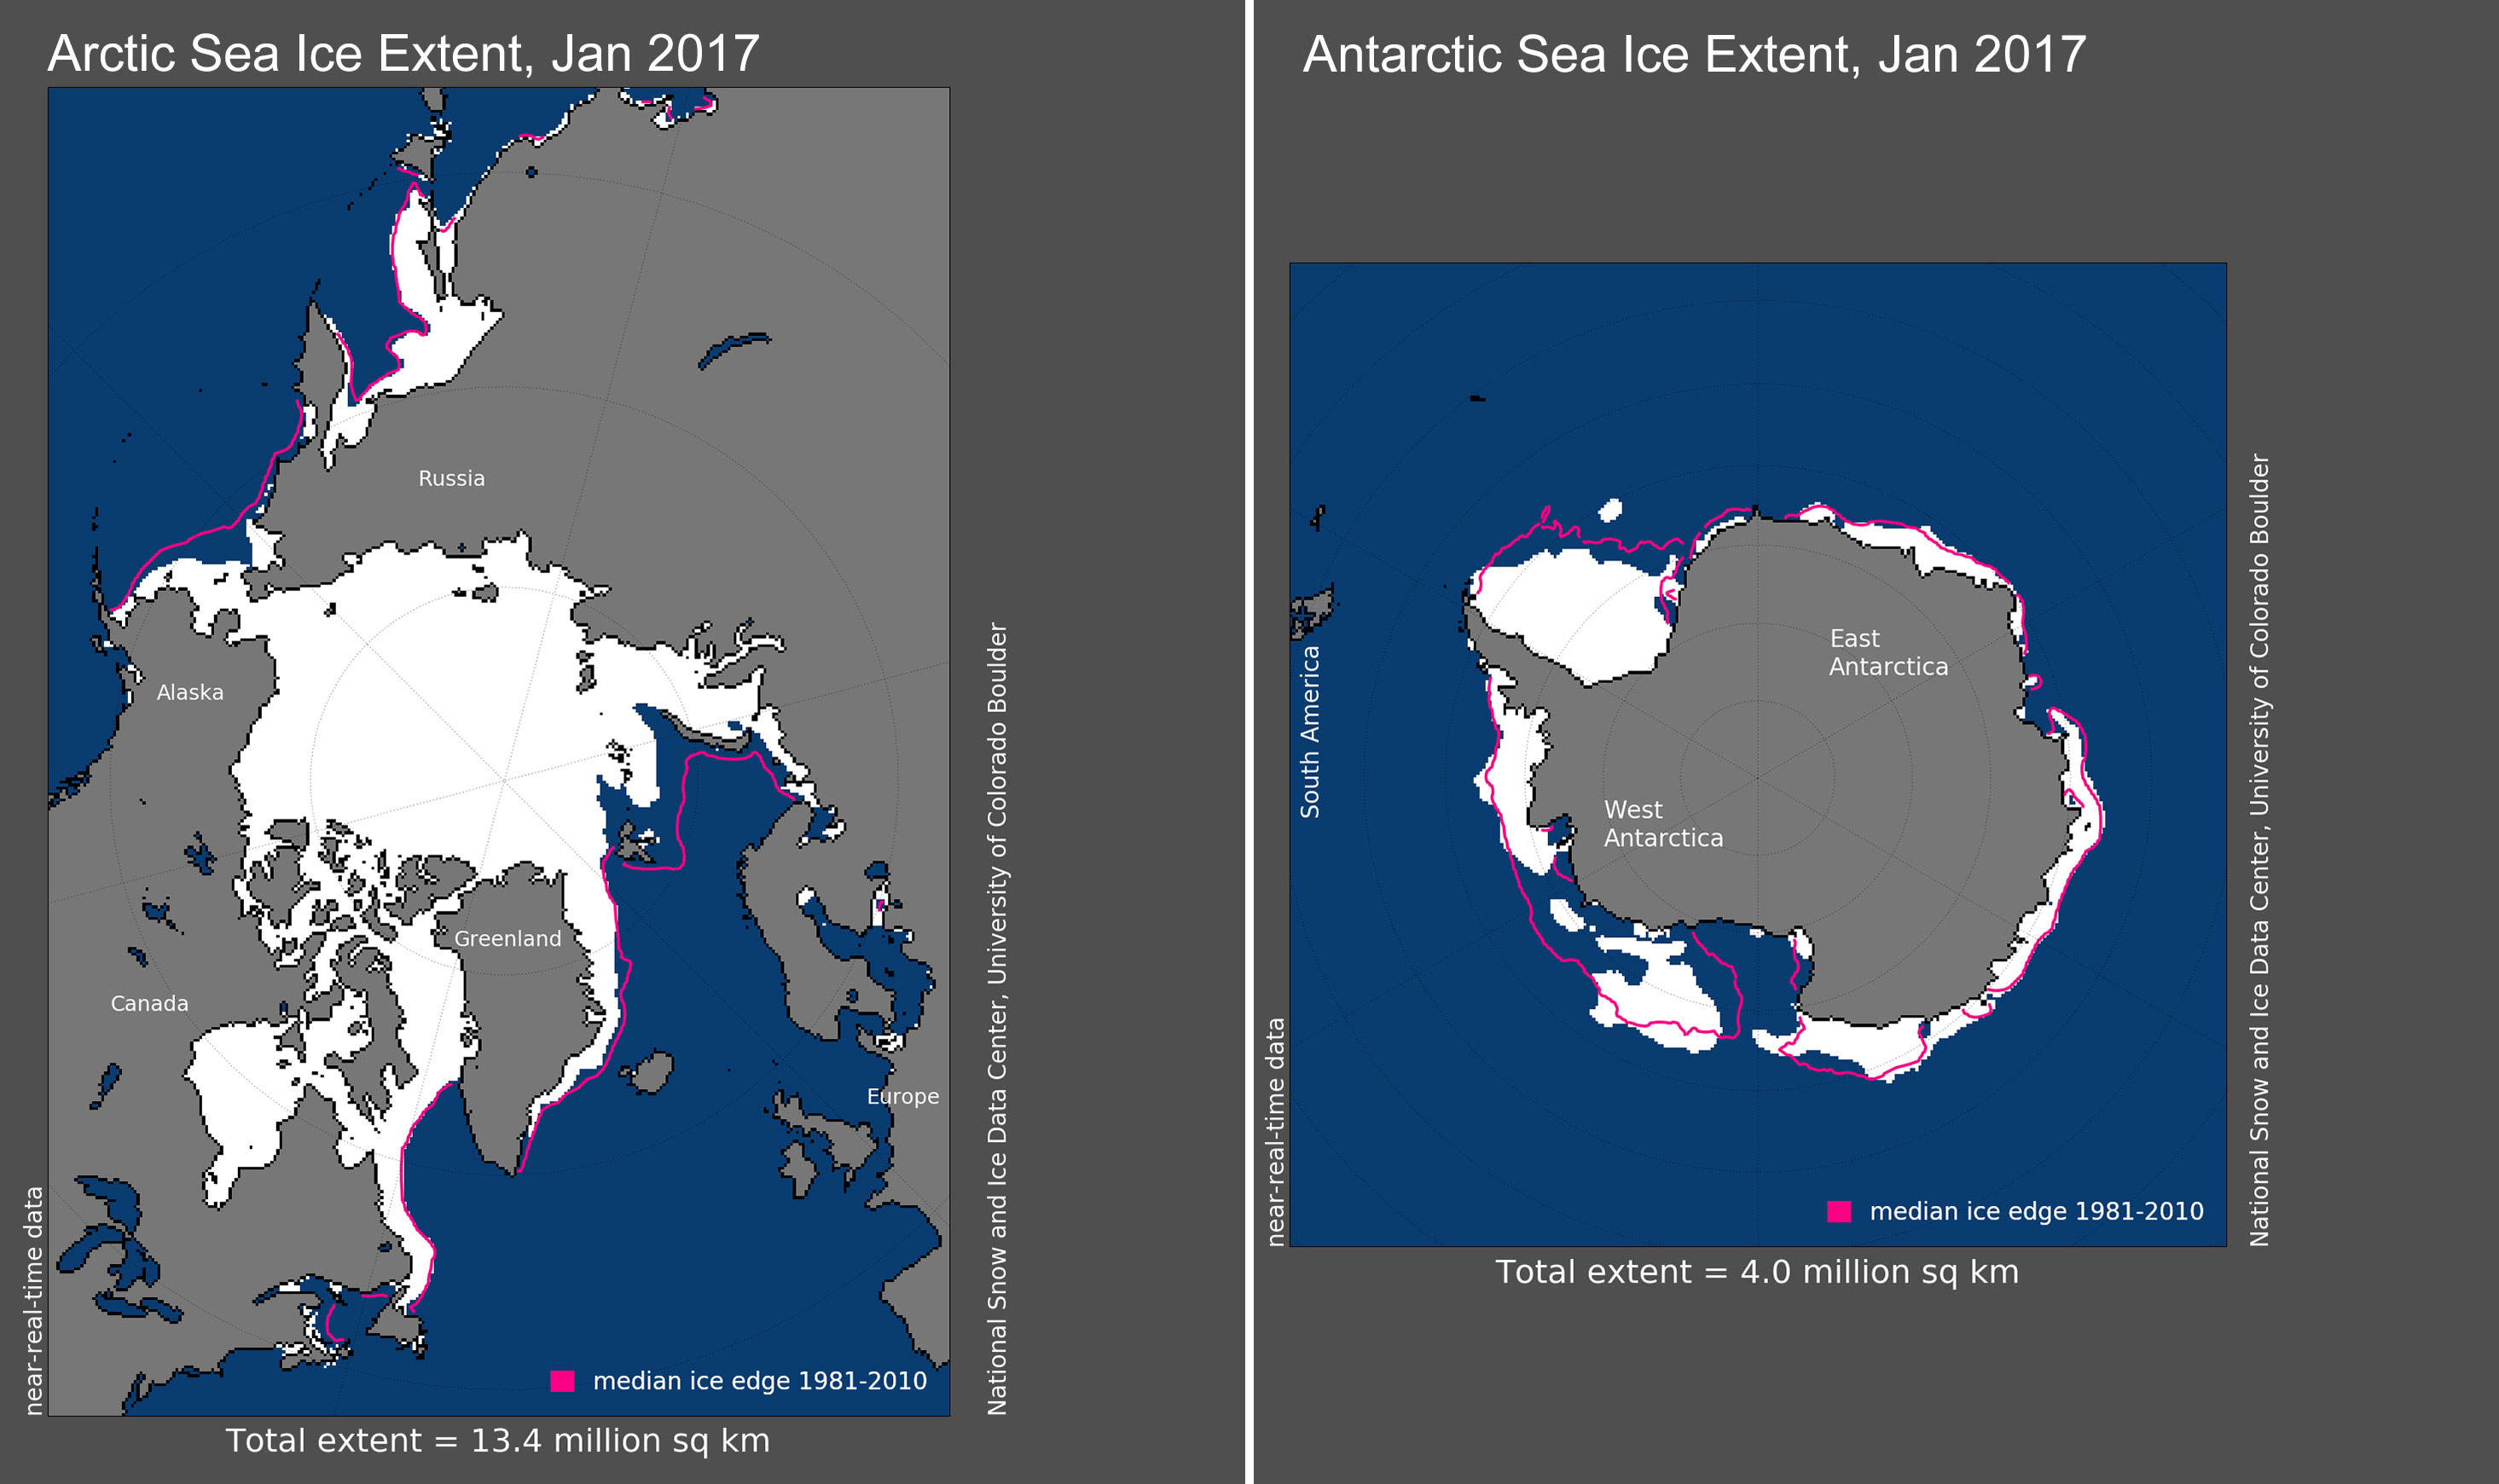 Maps of Arctic and Antarctic sea ice extent in January 2017